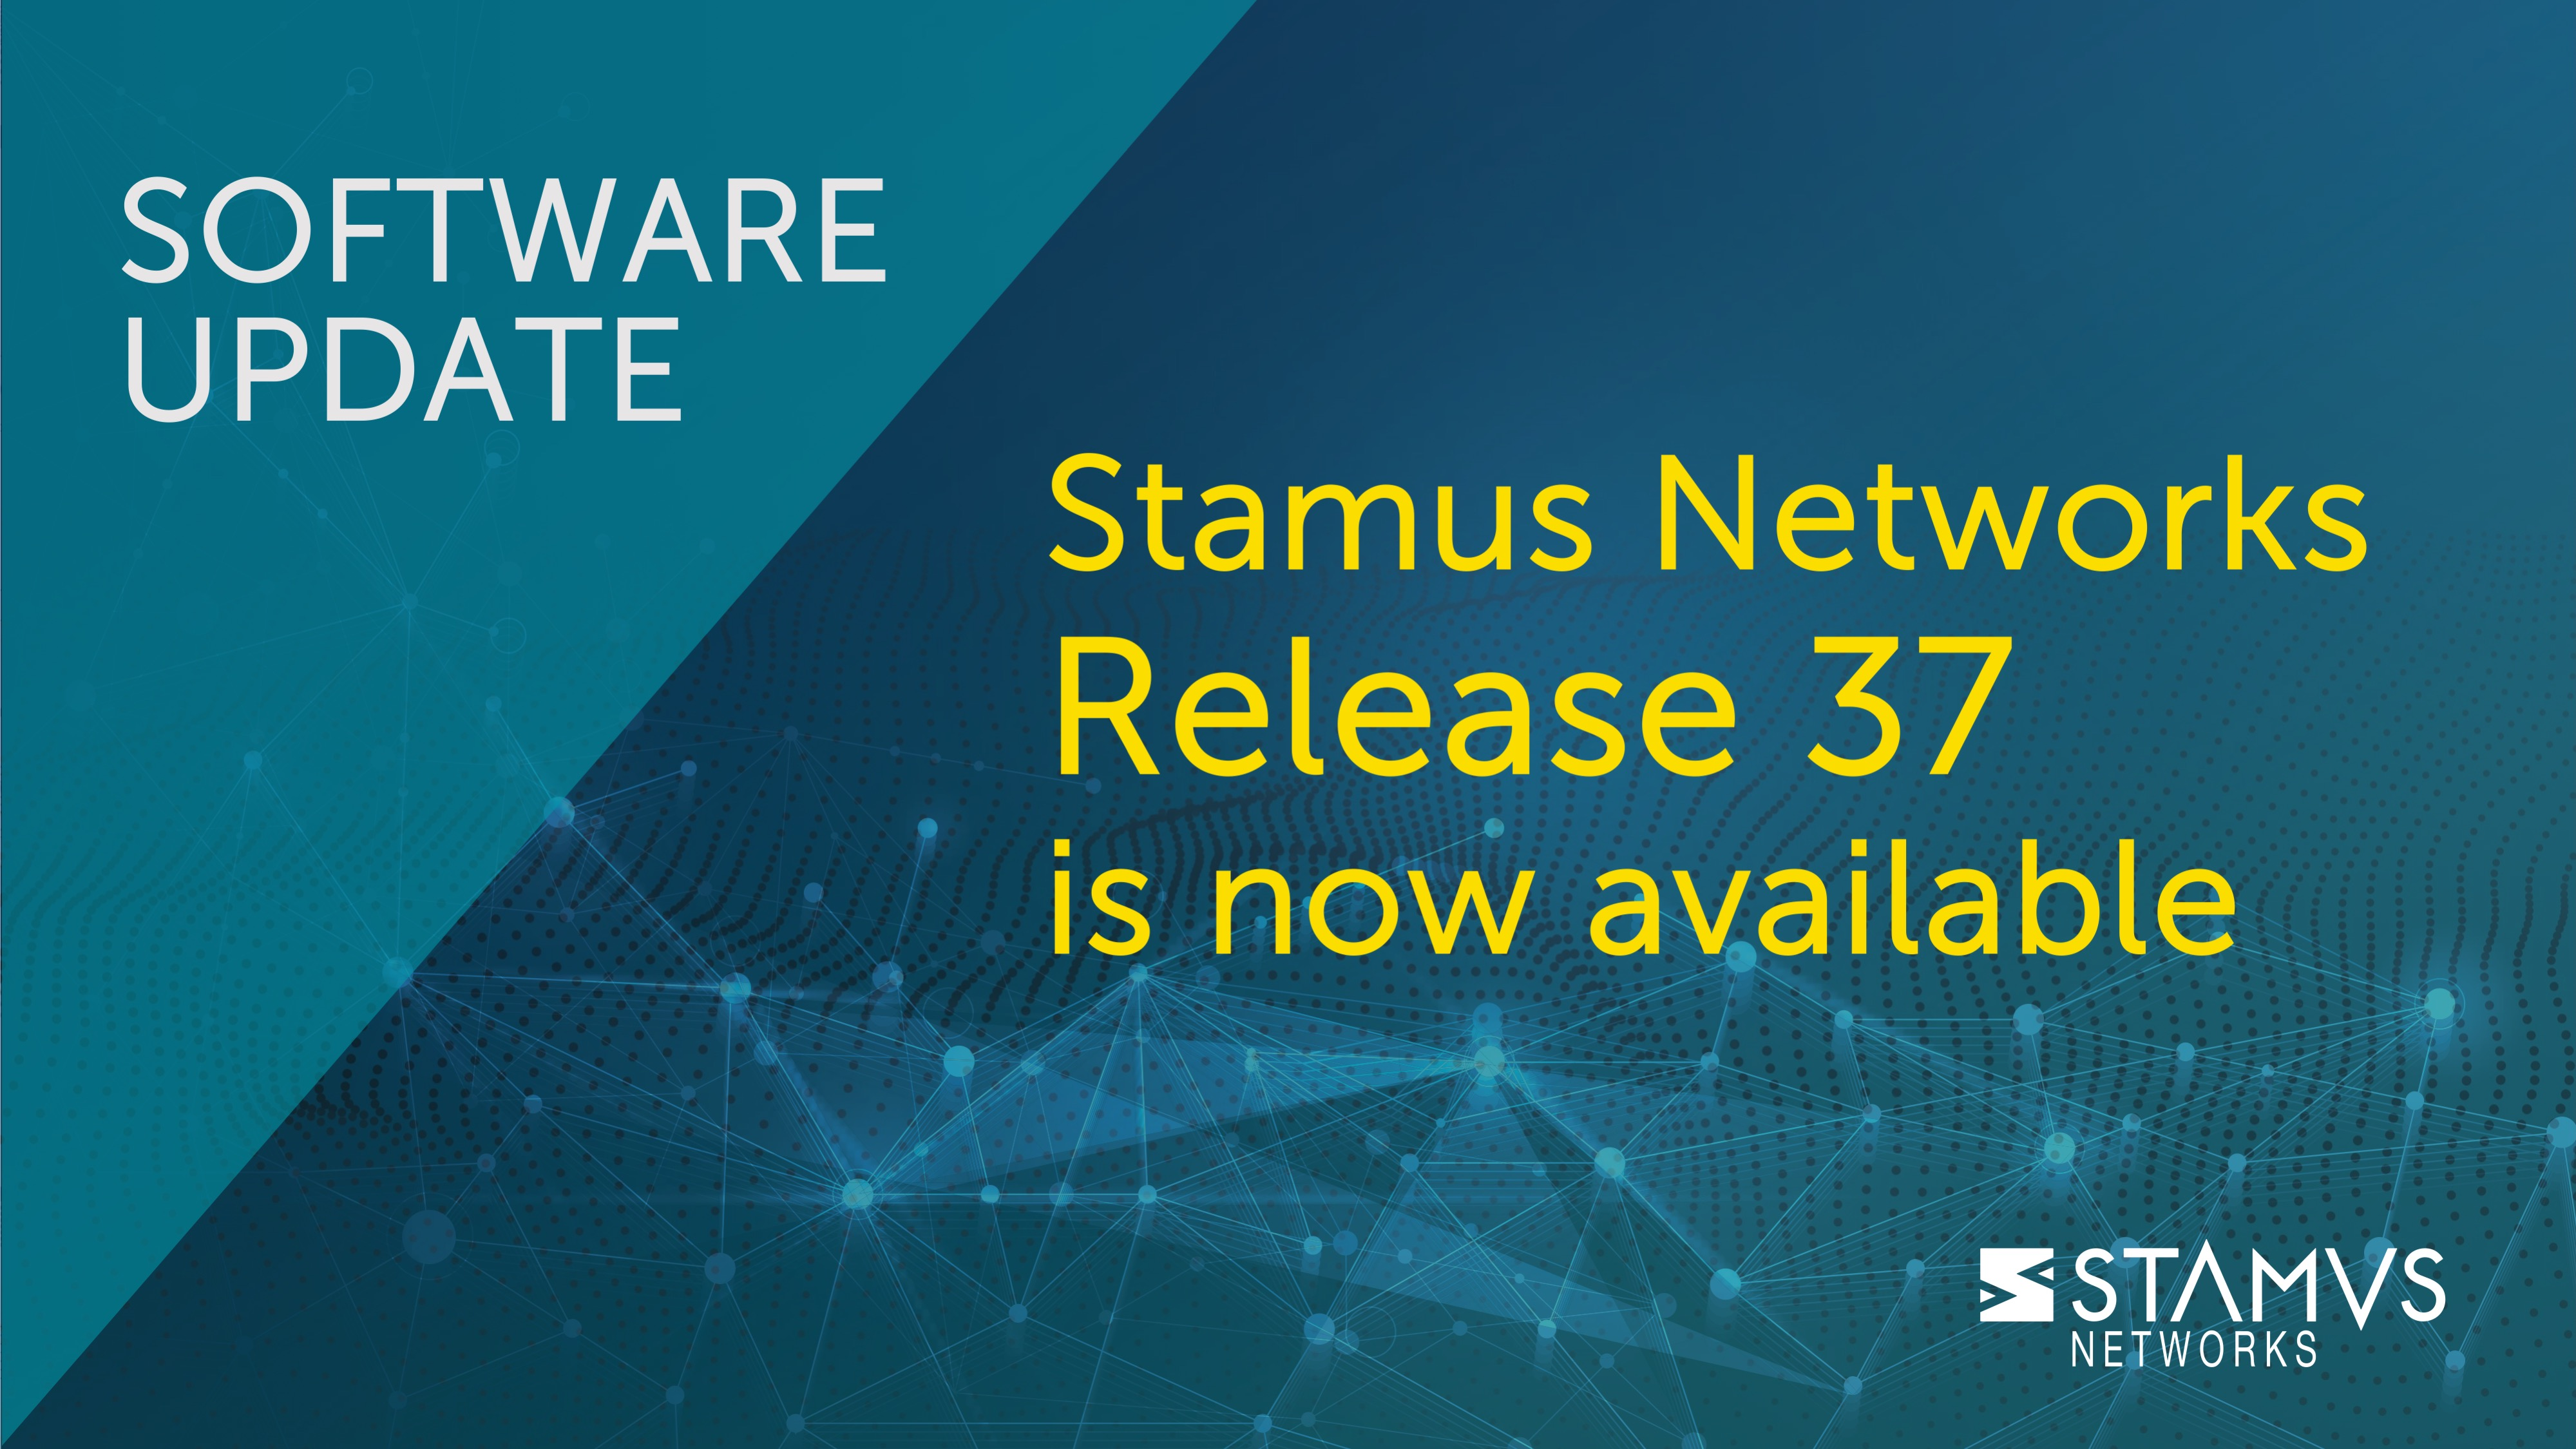 Stamus Networks Release 37 Now Available